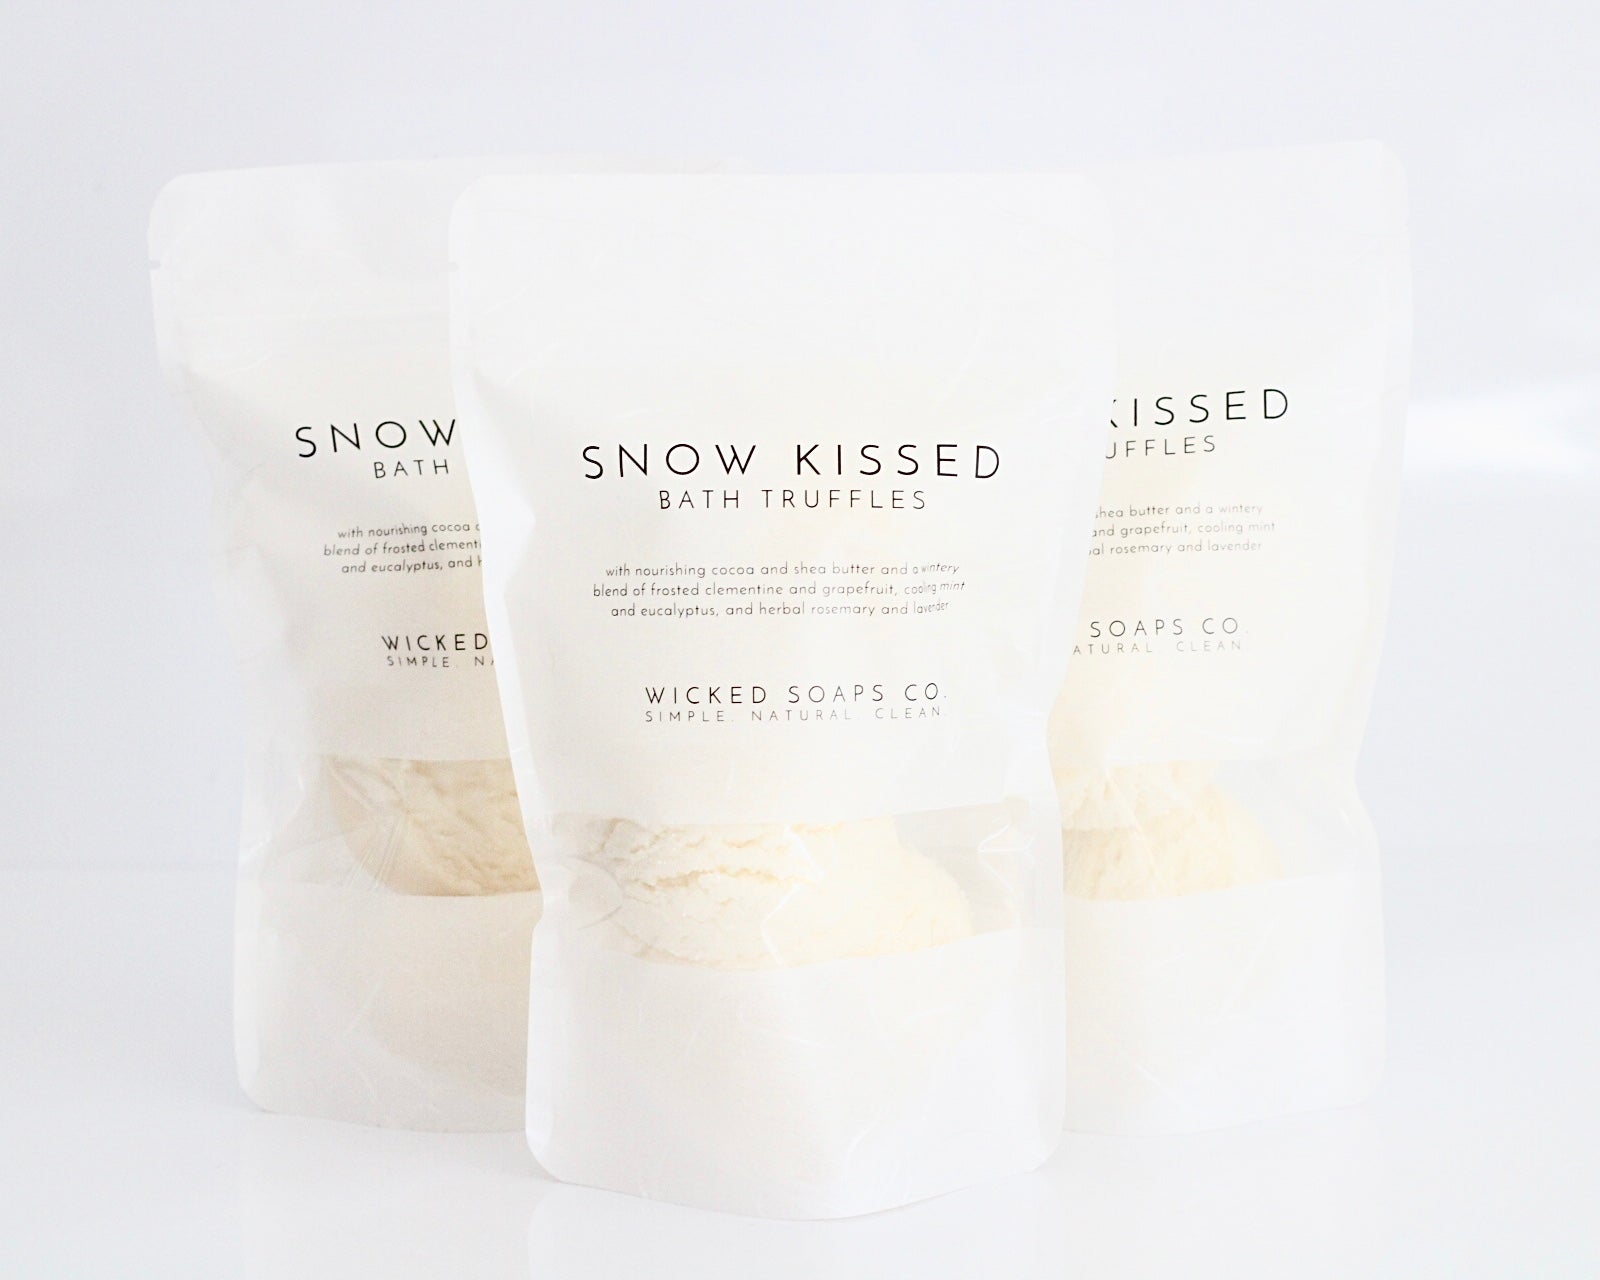 Snow Kissed Bath Truffles